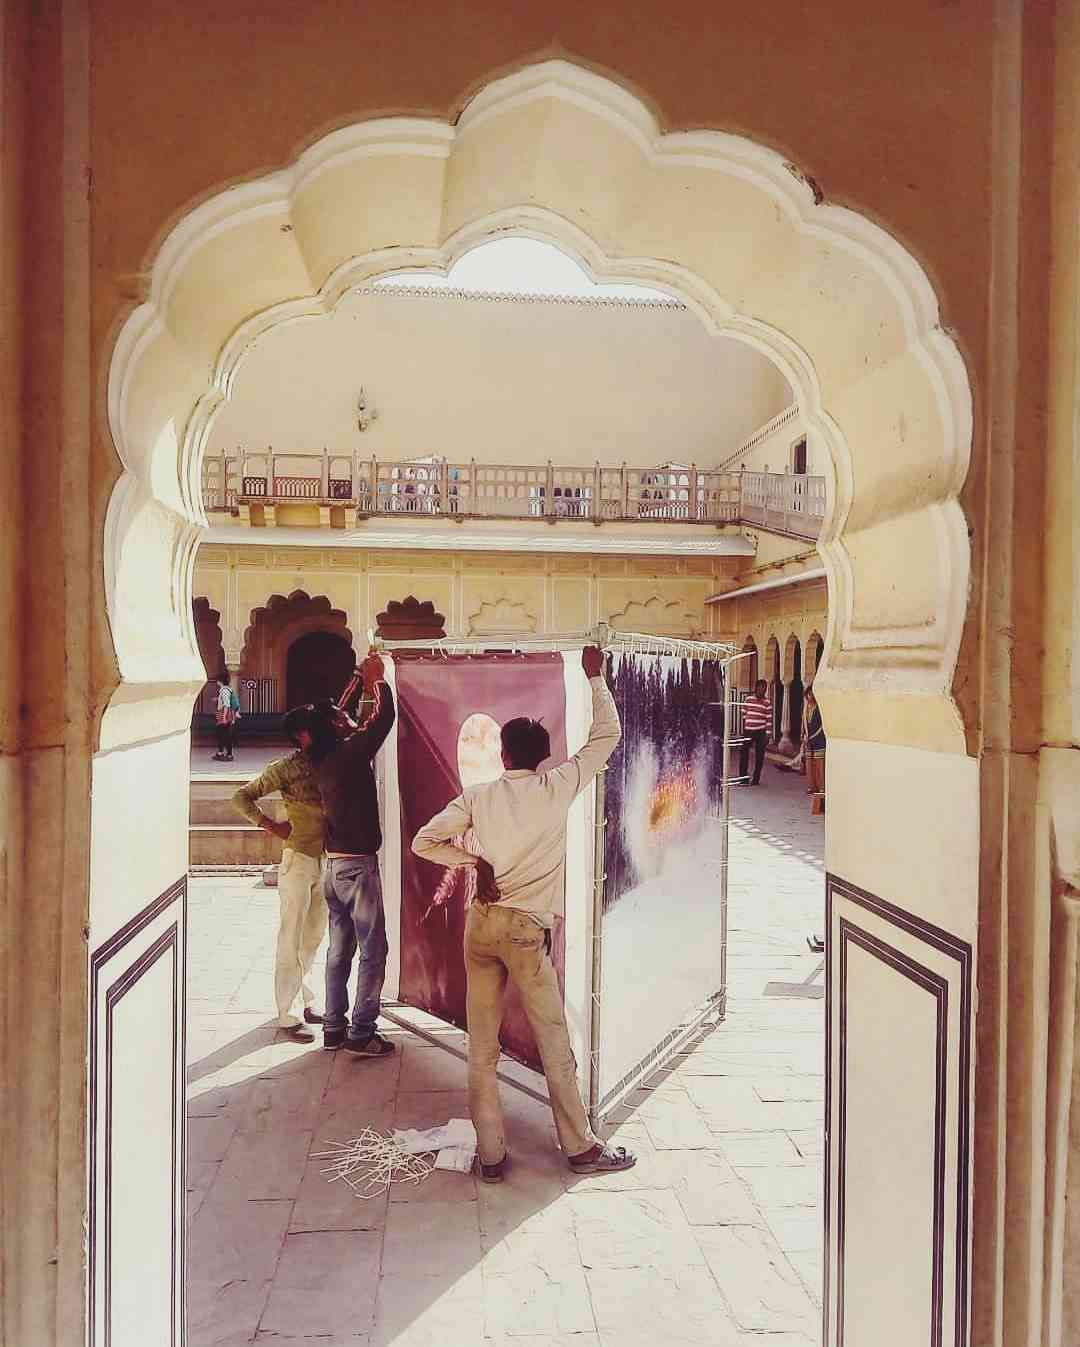 Terje Abusdal's work being installed at the Hawa Mahal #JaipurPhoto